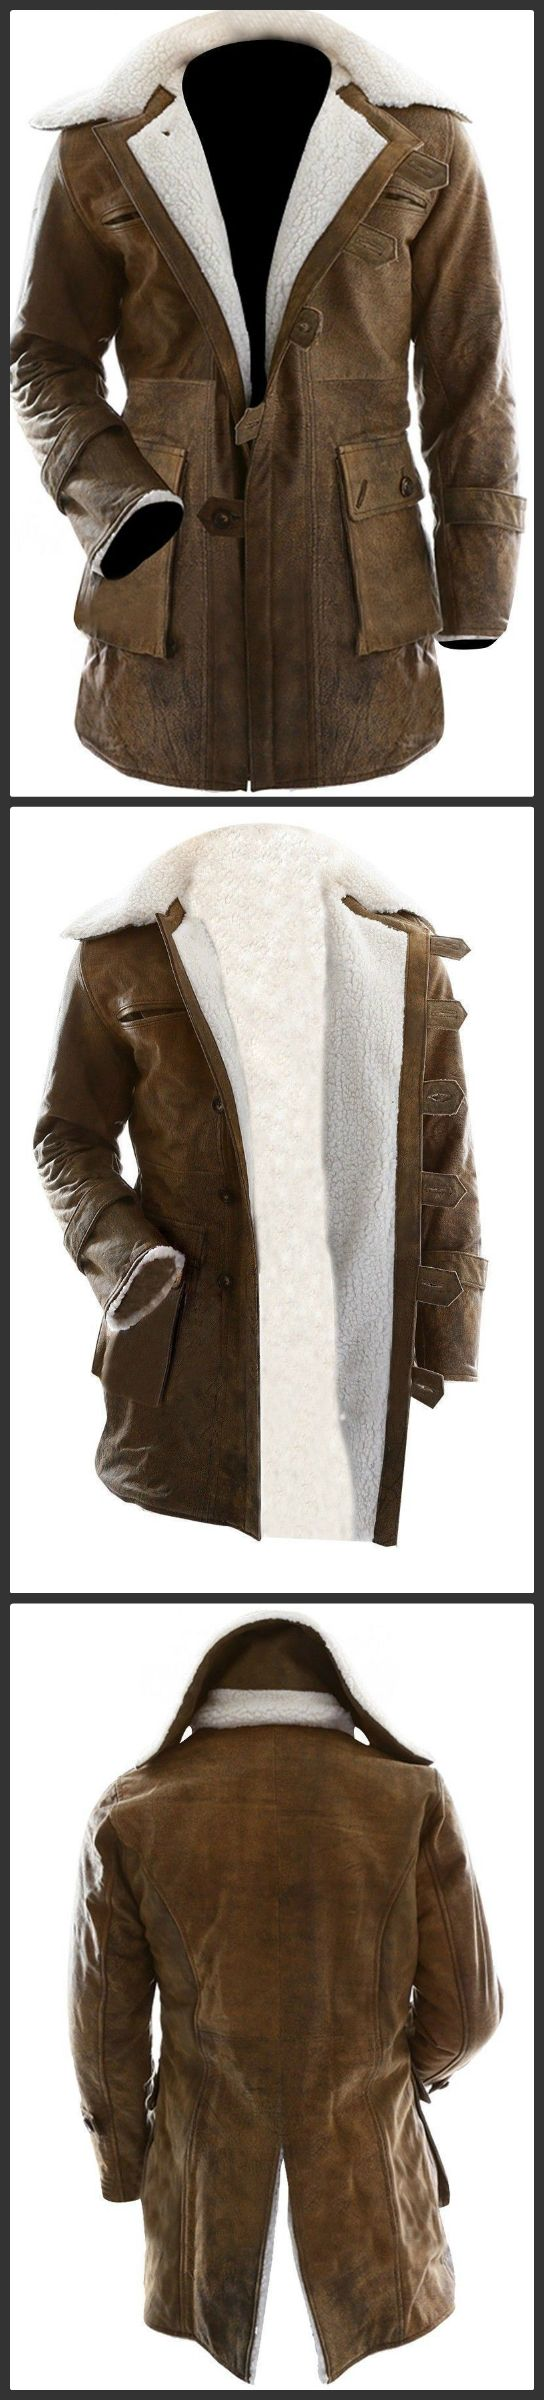 Christmas Special Offer!!! Our online store brings this Christmas outstanding outer apparel for all Men and Boys. This is Dark Knight Rises Bane Leather Coat carry by super star Tom Hardy as Bane in the movie. The outfit is made with 100% Real Leather with soft lining inside. Place your order now and get at amazing price.